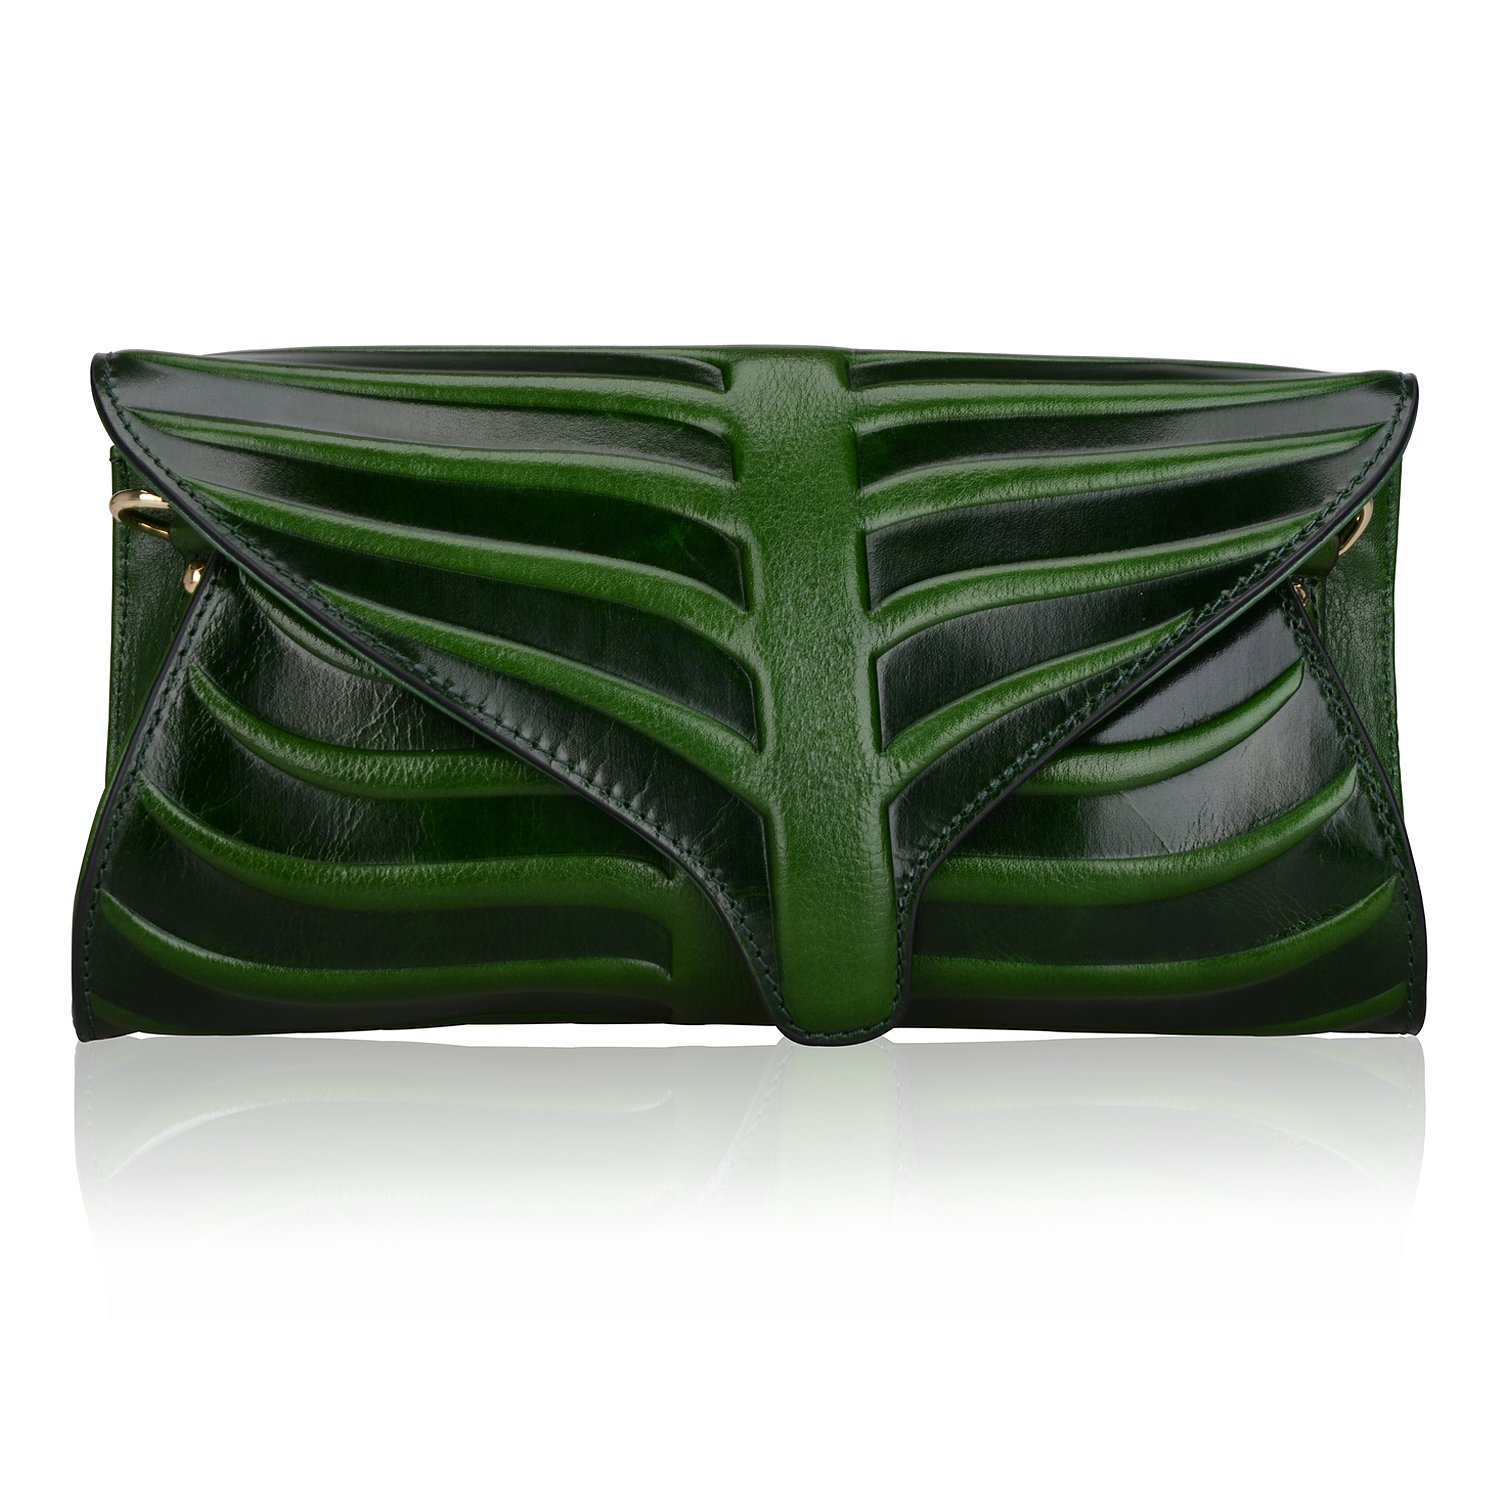 Pijushi Leaf Designer Handbags Embossed Leather Clutch Bag Cross Body Purses 22290 (One Size, Green)